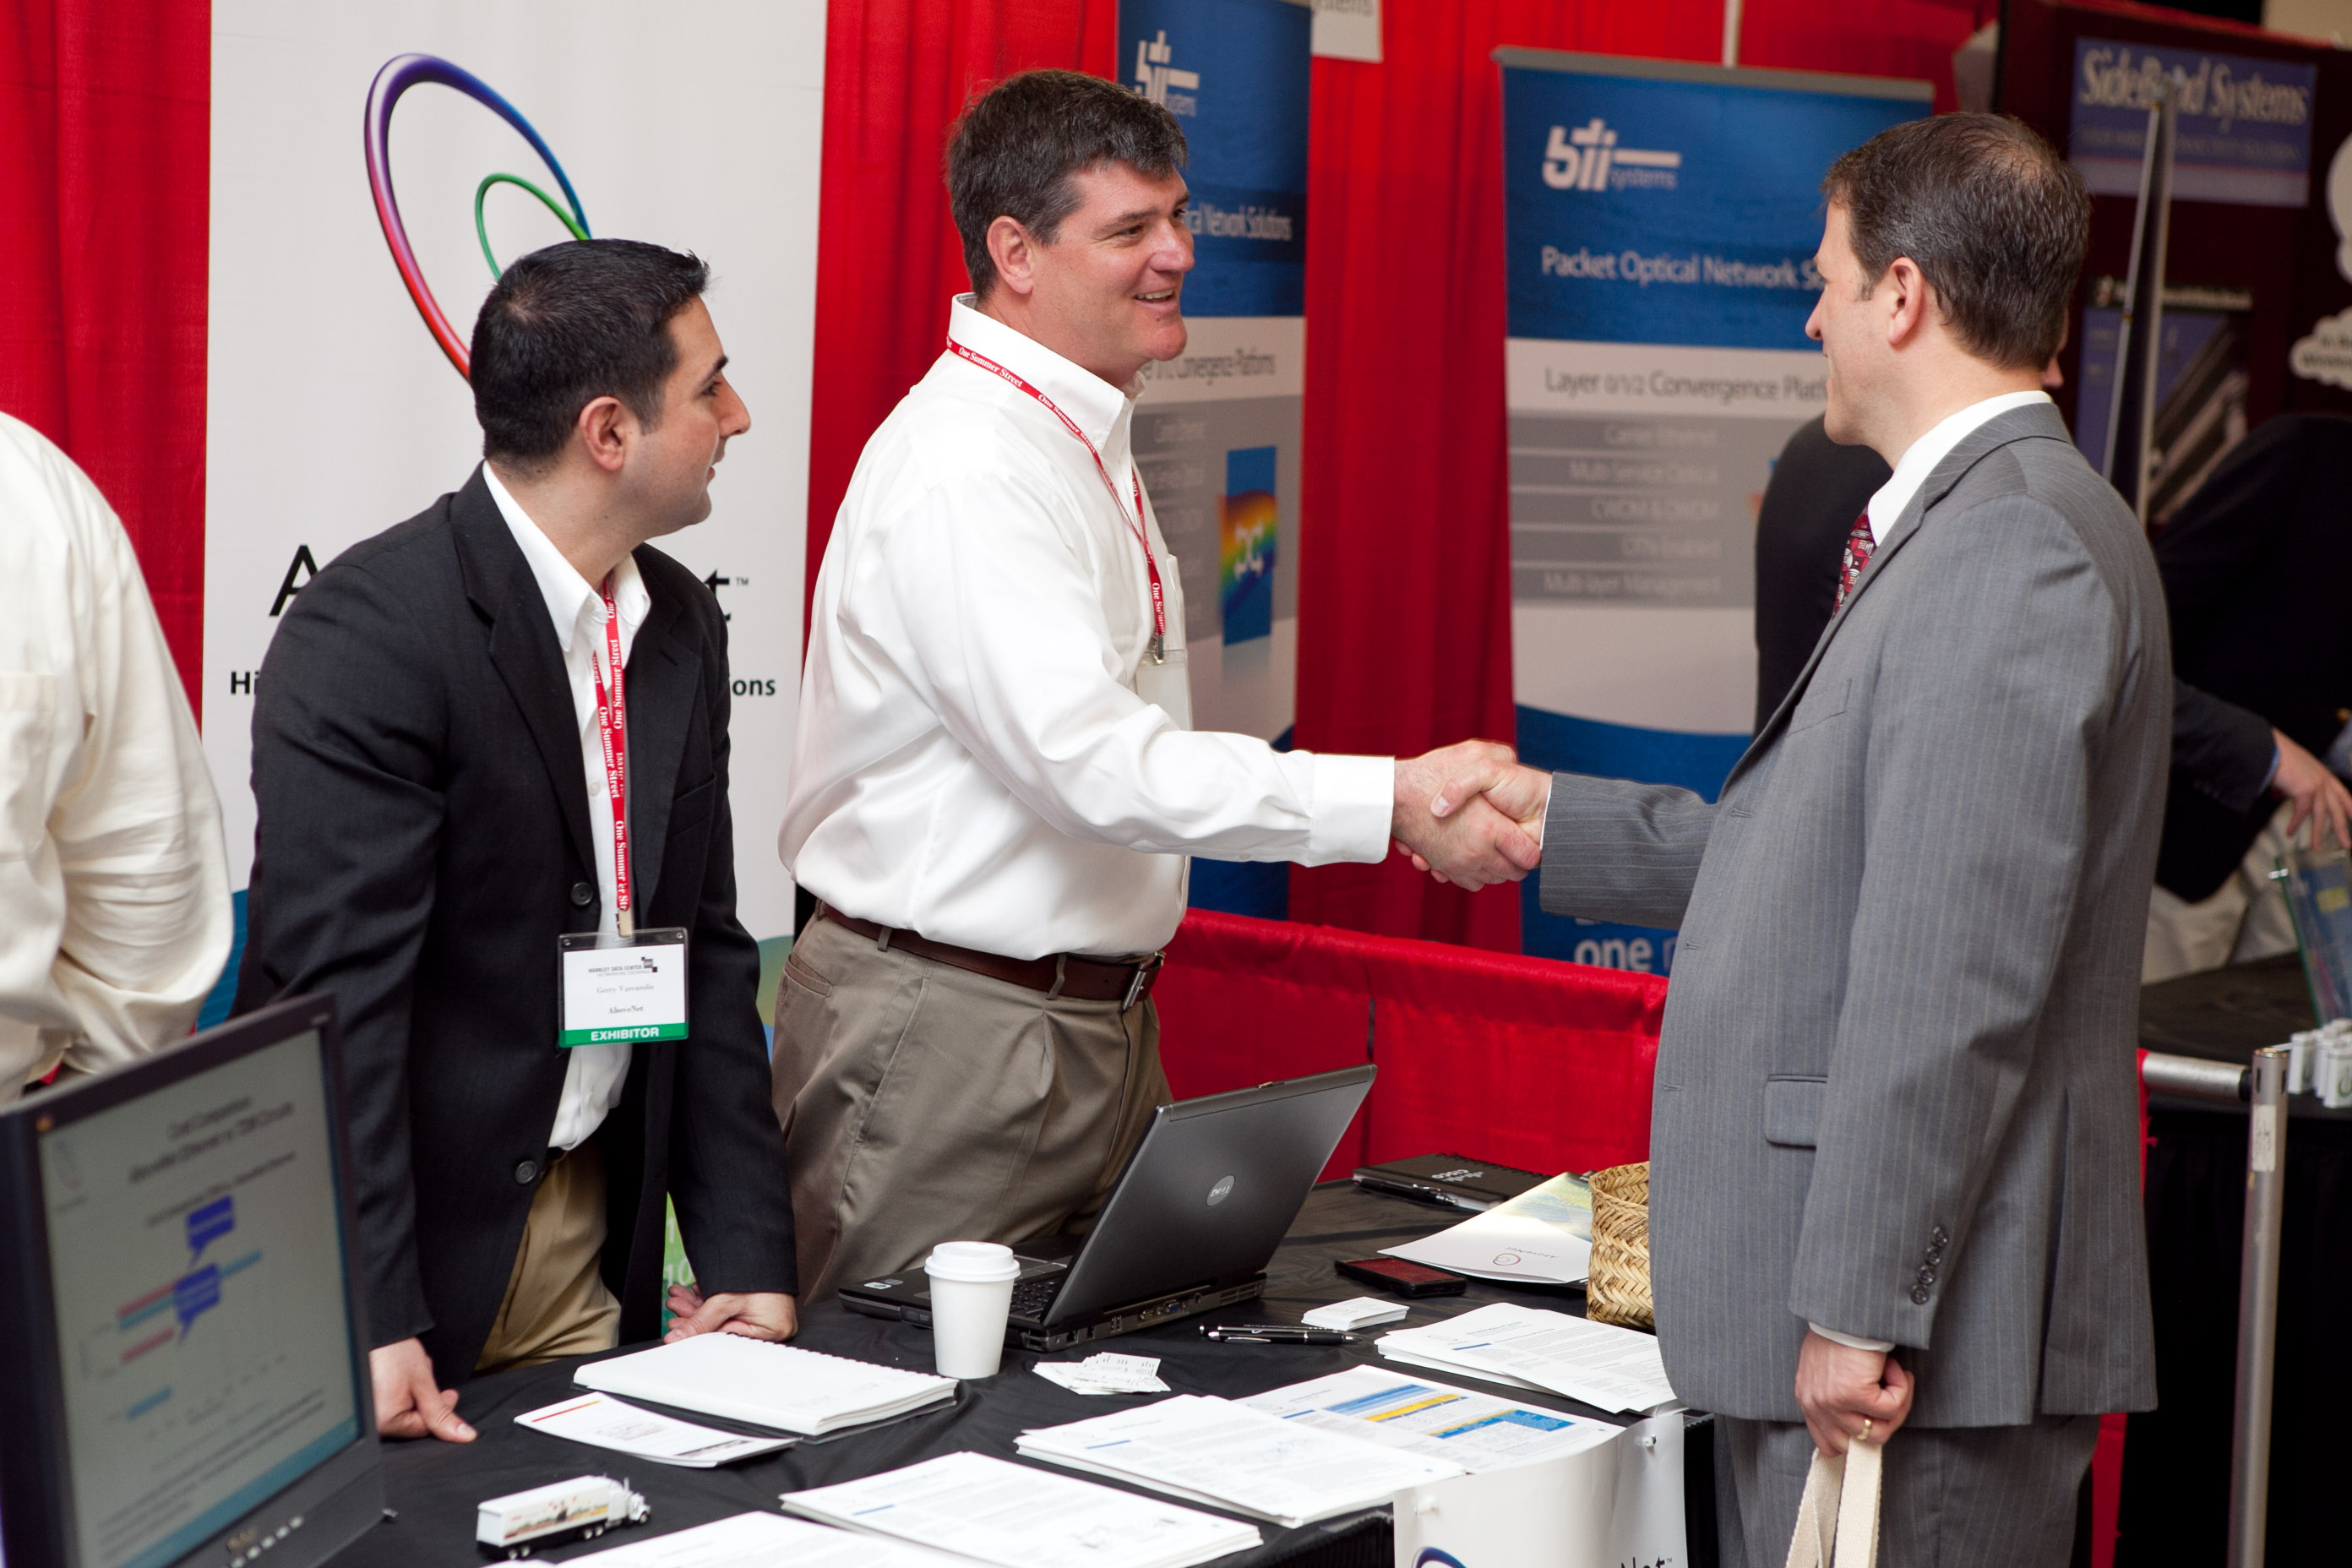 The 2011 Data Center Summit was a Great Success